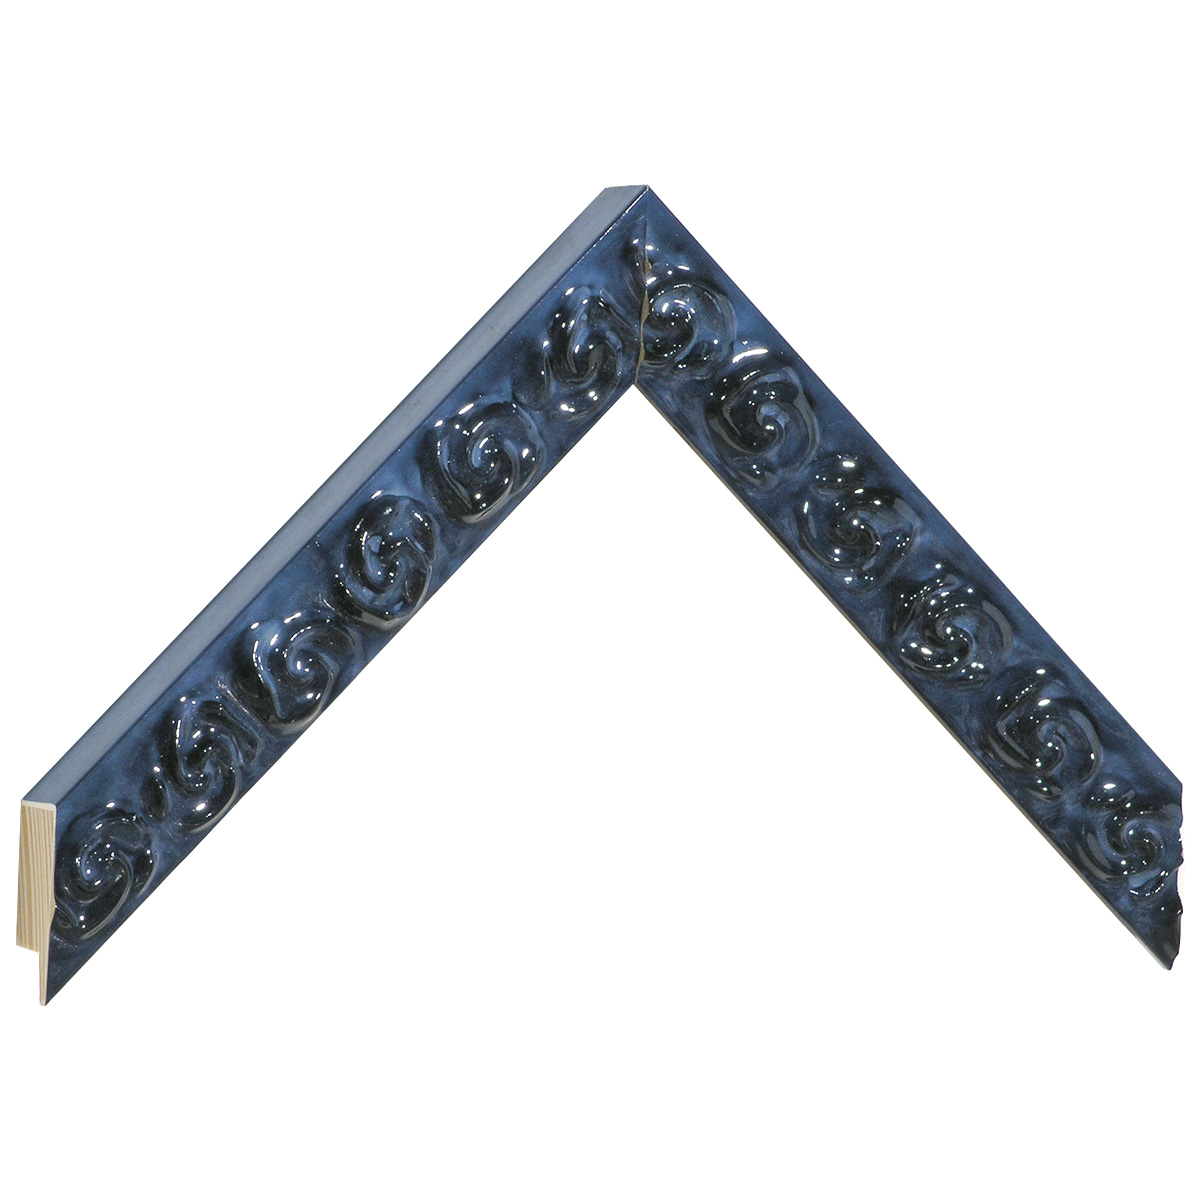 Moulding pine with decorations in relief - Bright blue